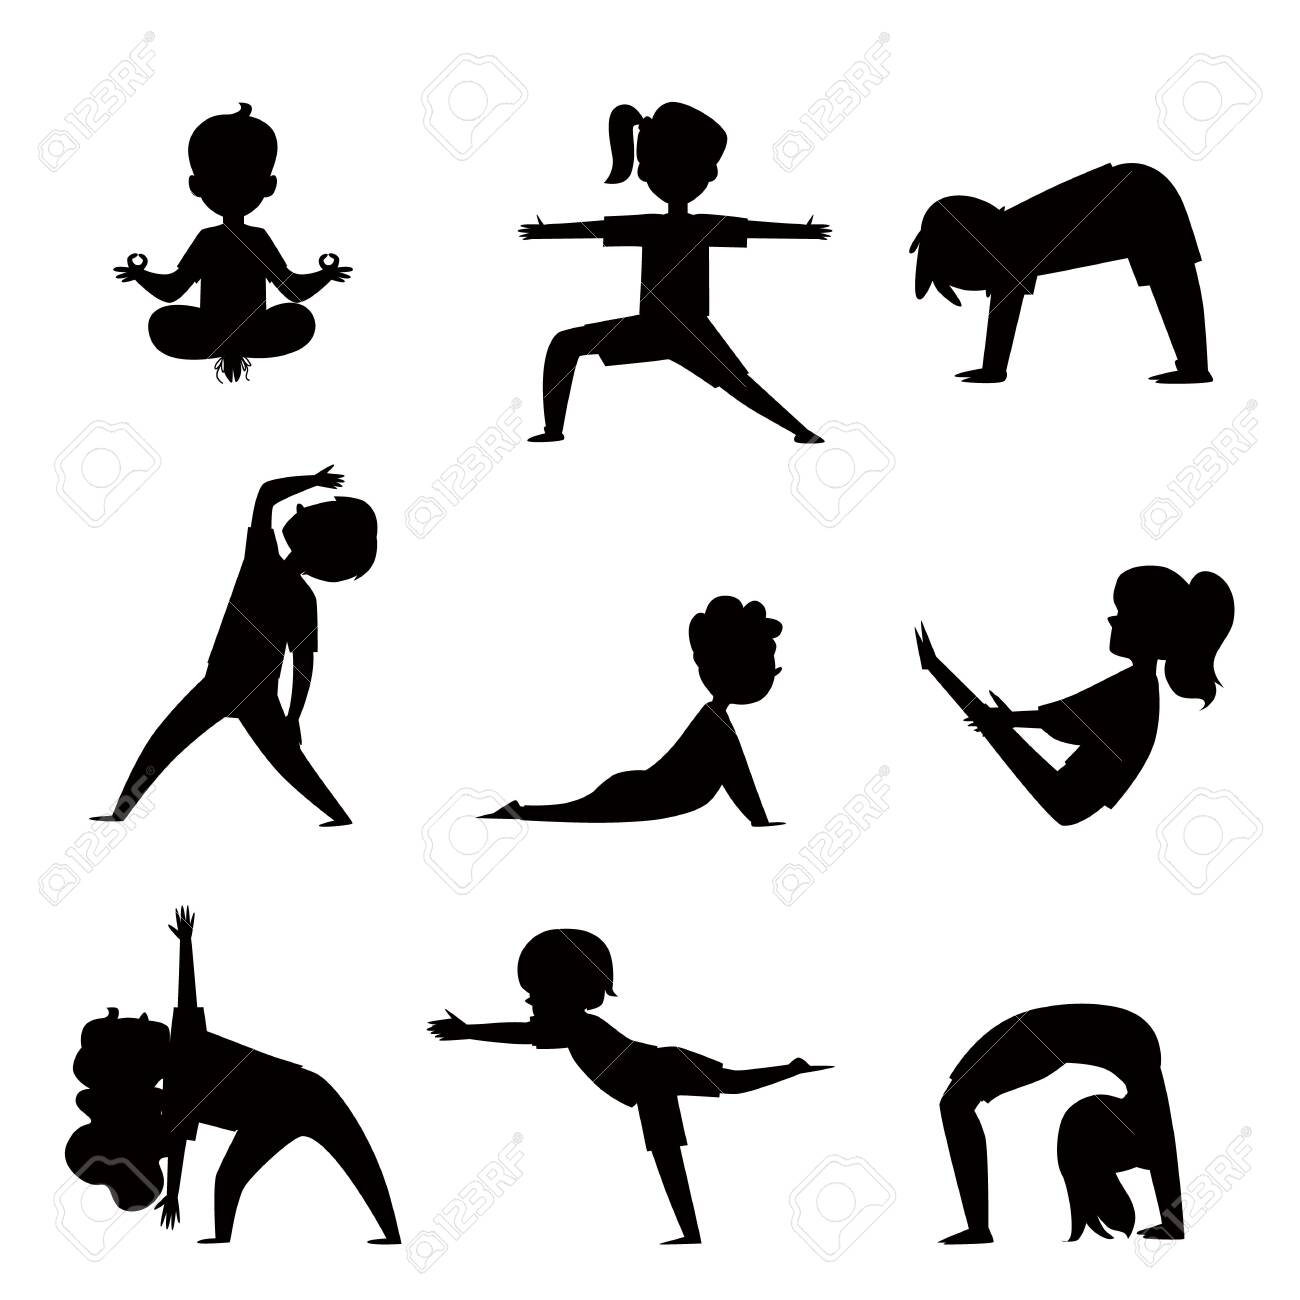 Cartoon Kids Silhouette Set In Various Yoga Poses Child Exercise Royalty Free Cliparts Vectors And Stock Illustration Image 129267604